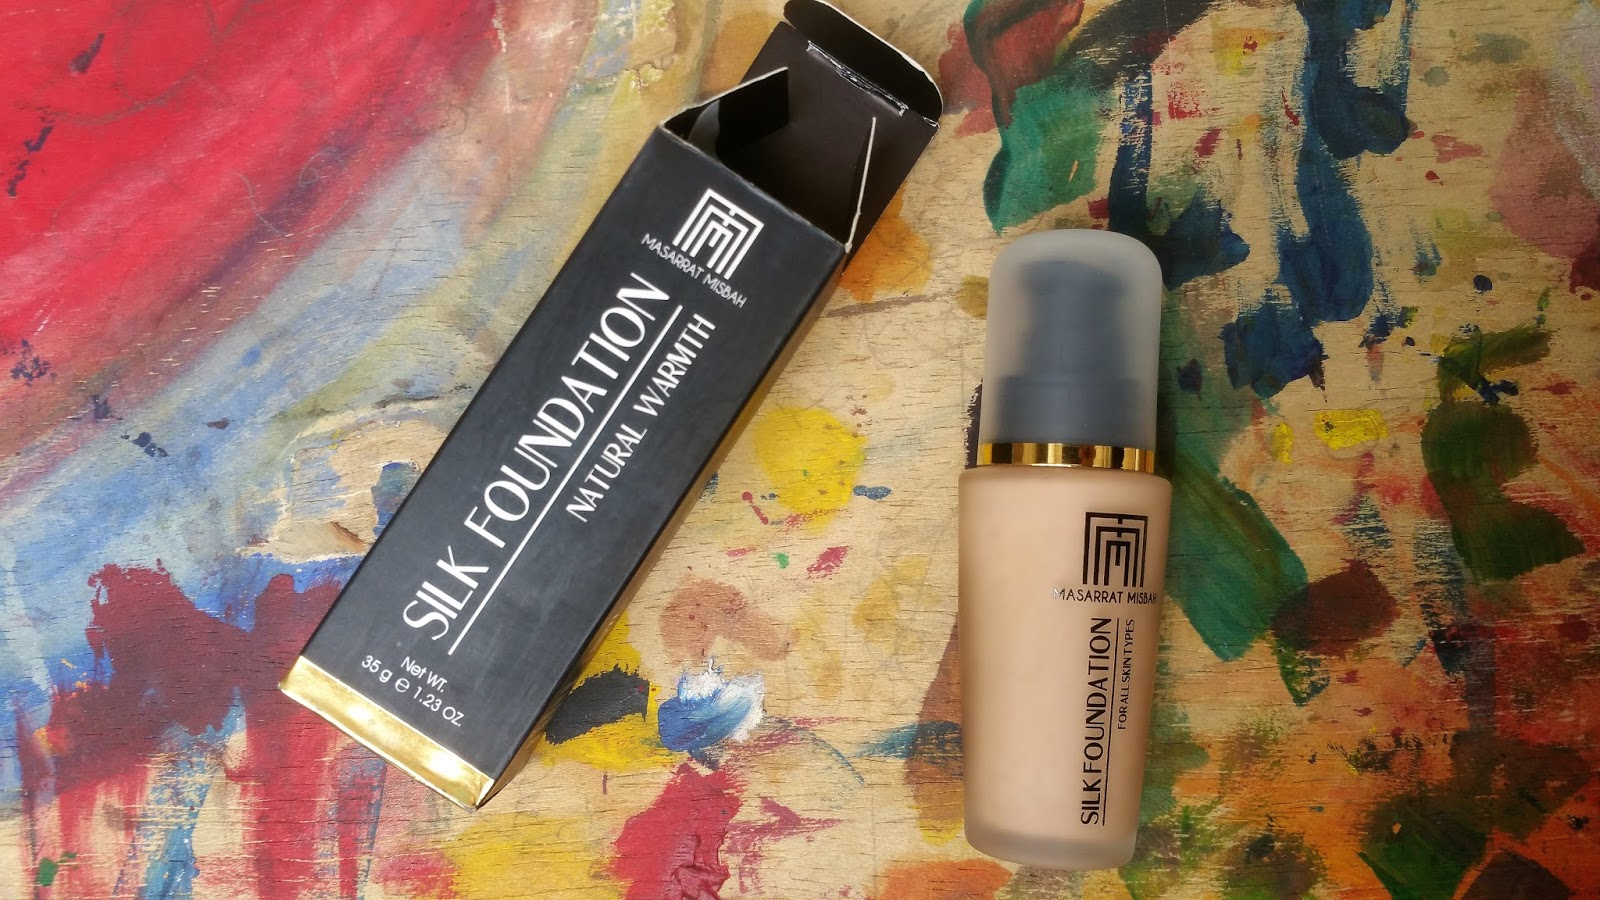 Selecting the correct foundation color can be tricky, confusing and intimidating. It is mandatory as well as it makes or breaks your entire makeup look.